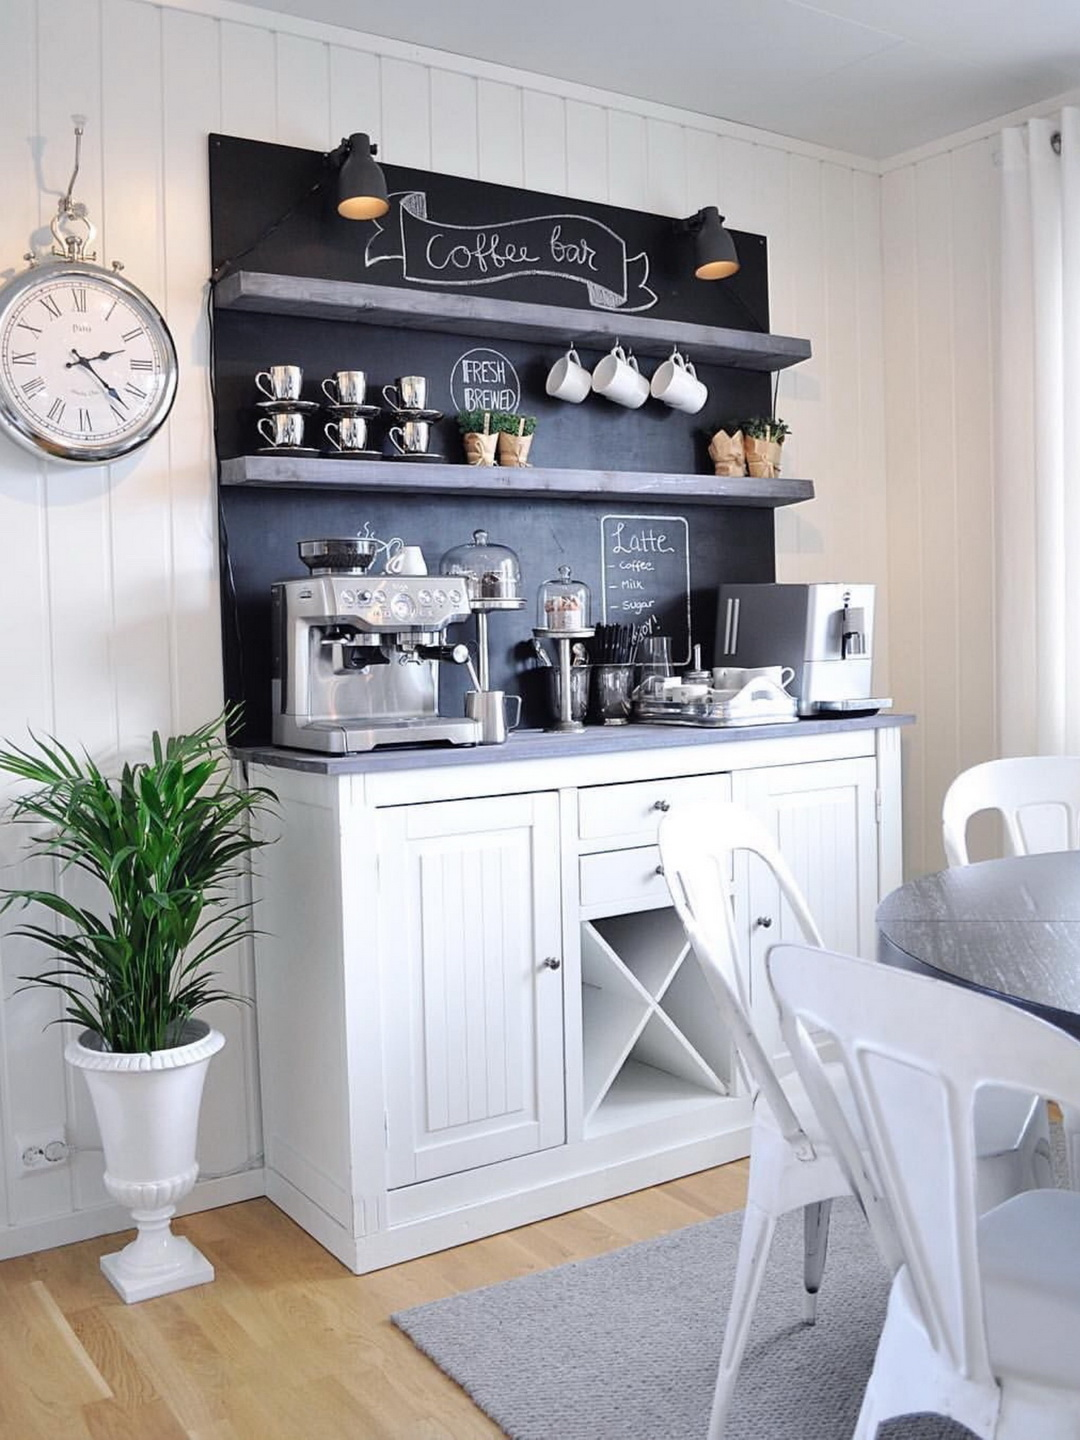 Farmhouse Coffee Shop 30 Stylish Home Coffee Bar Ideas Stunning Pictures Included